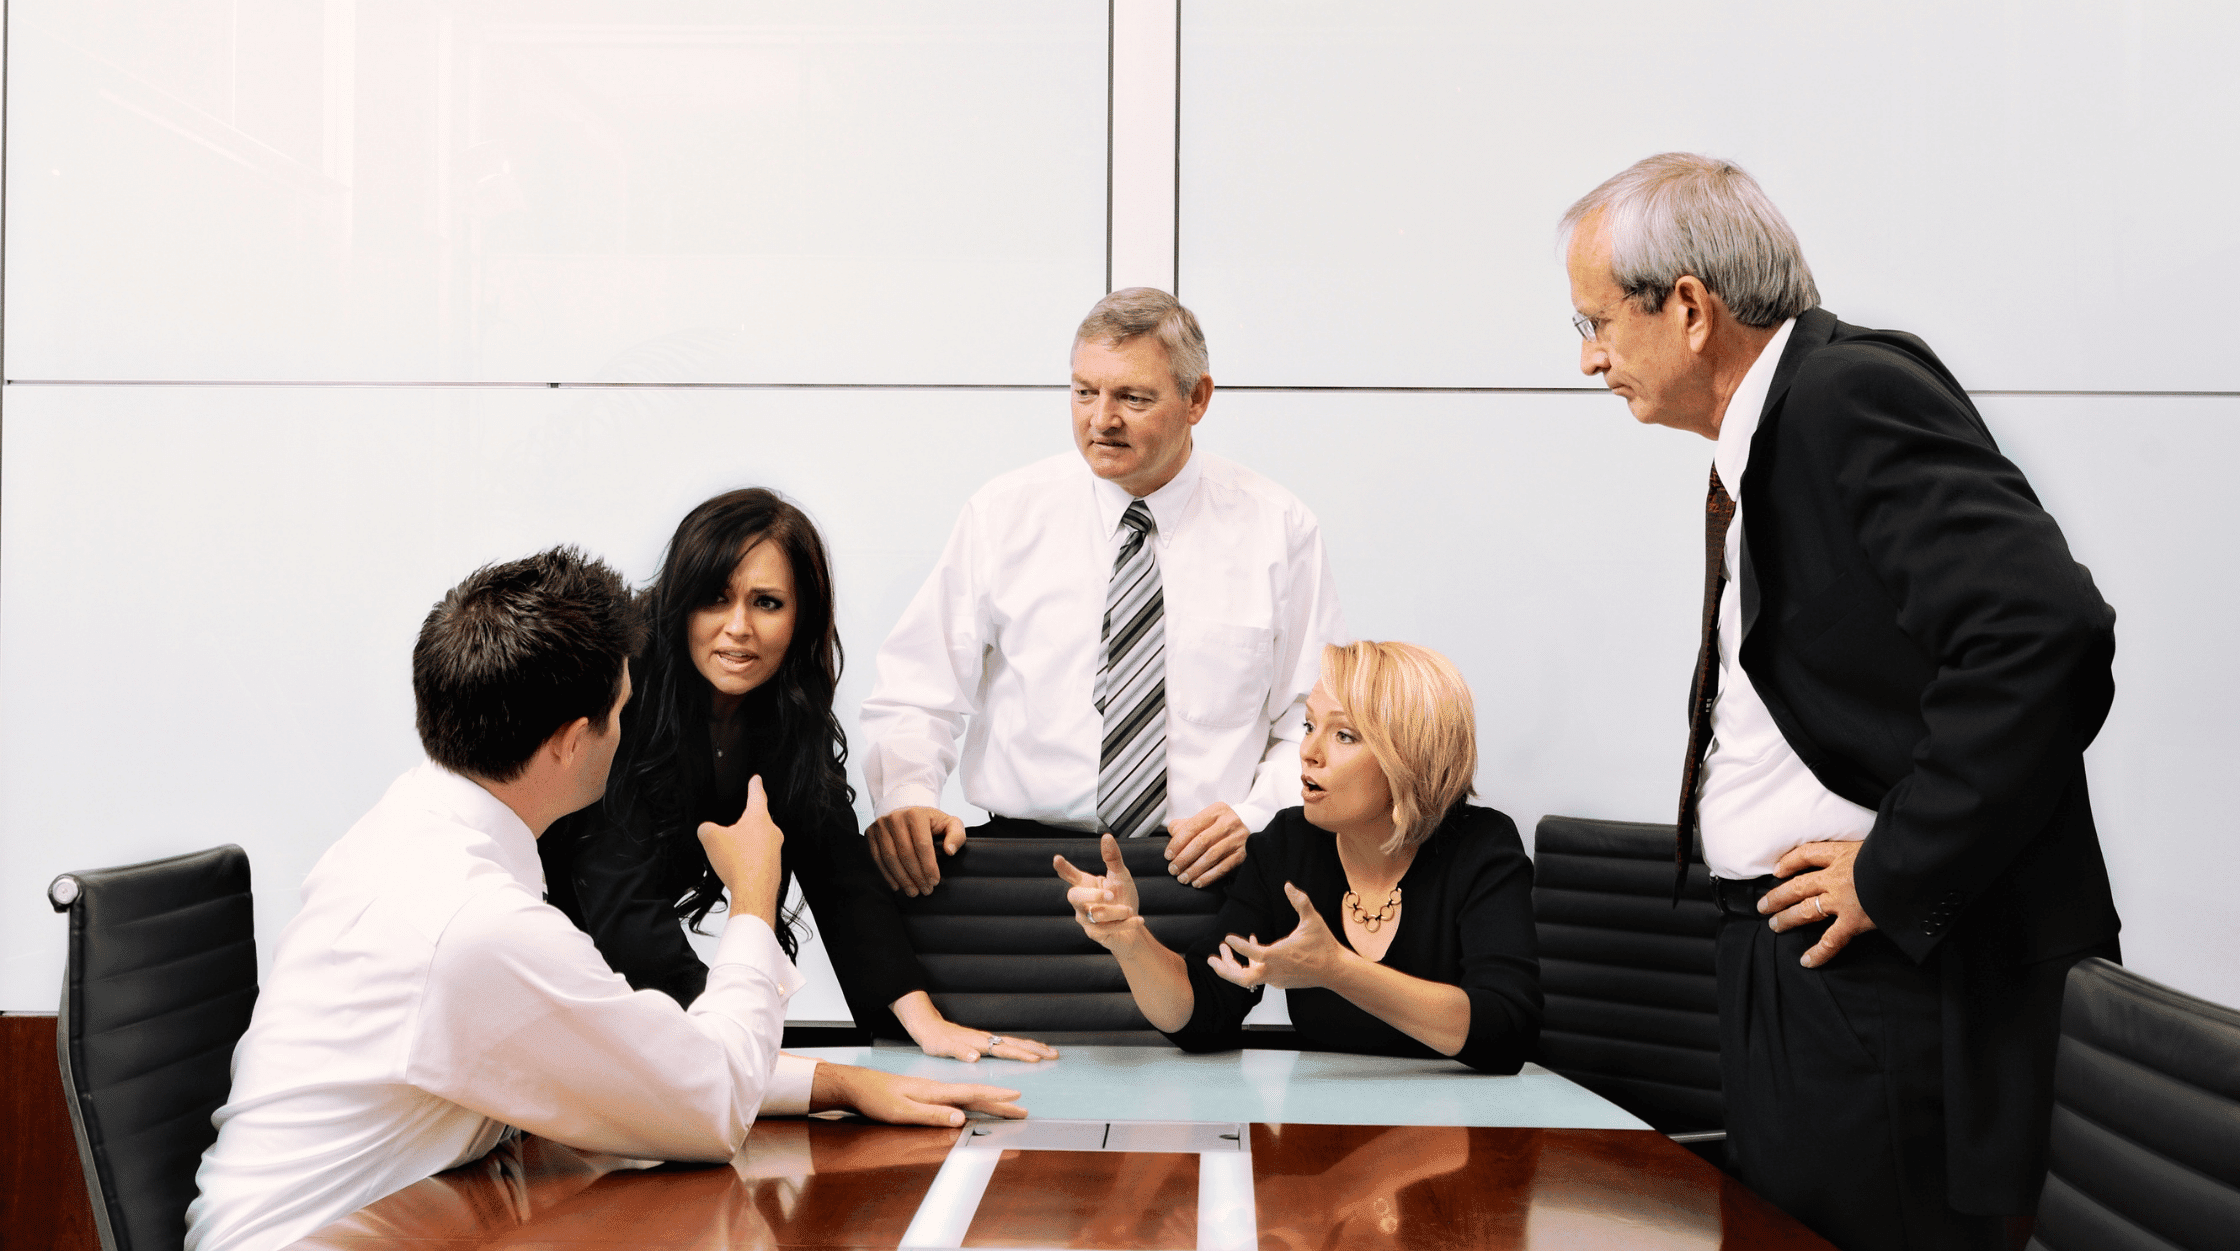 Detect Conflict at Work